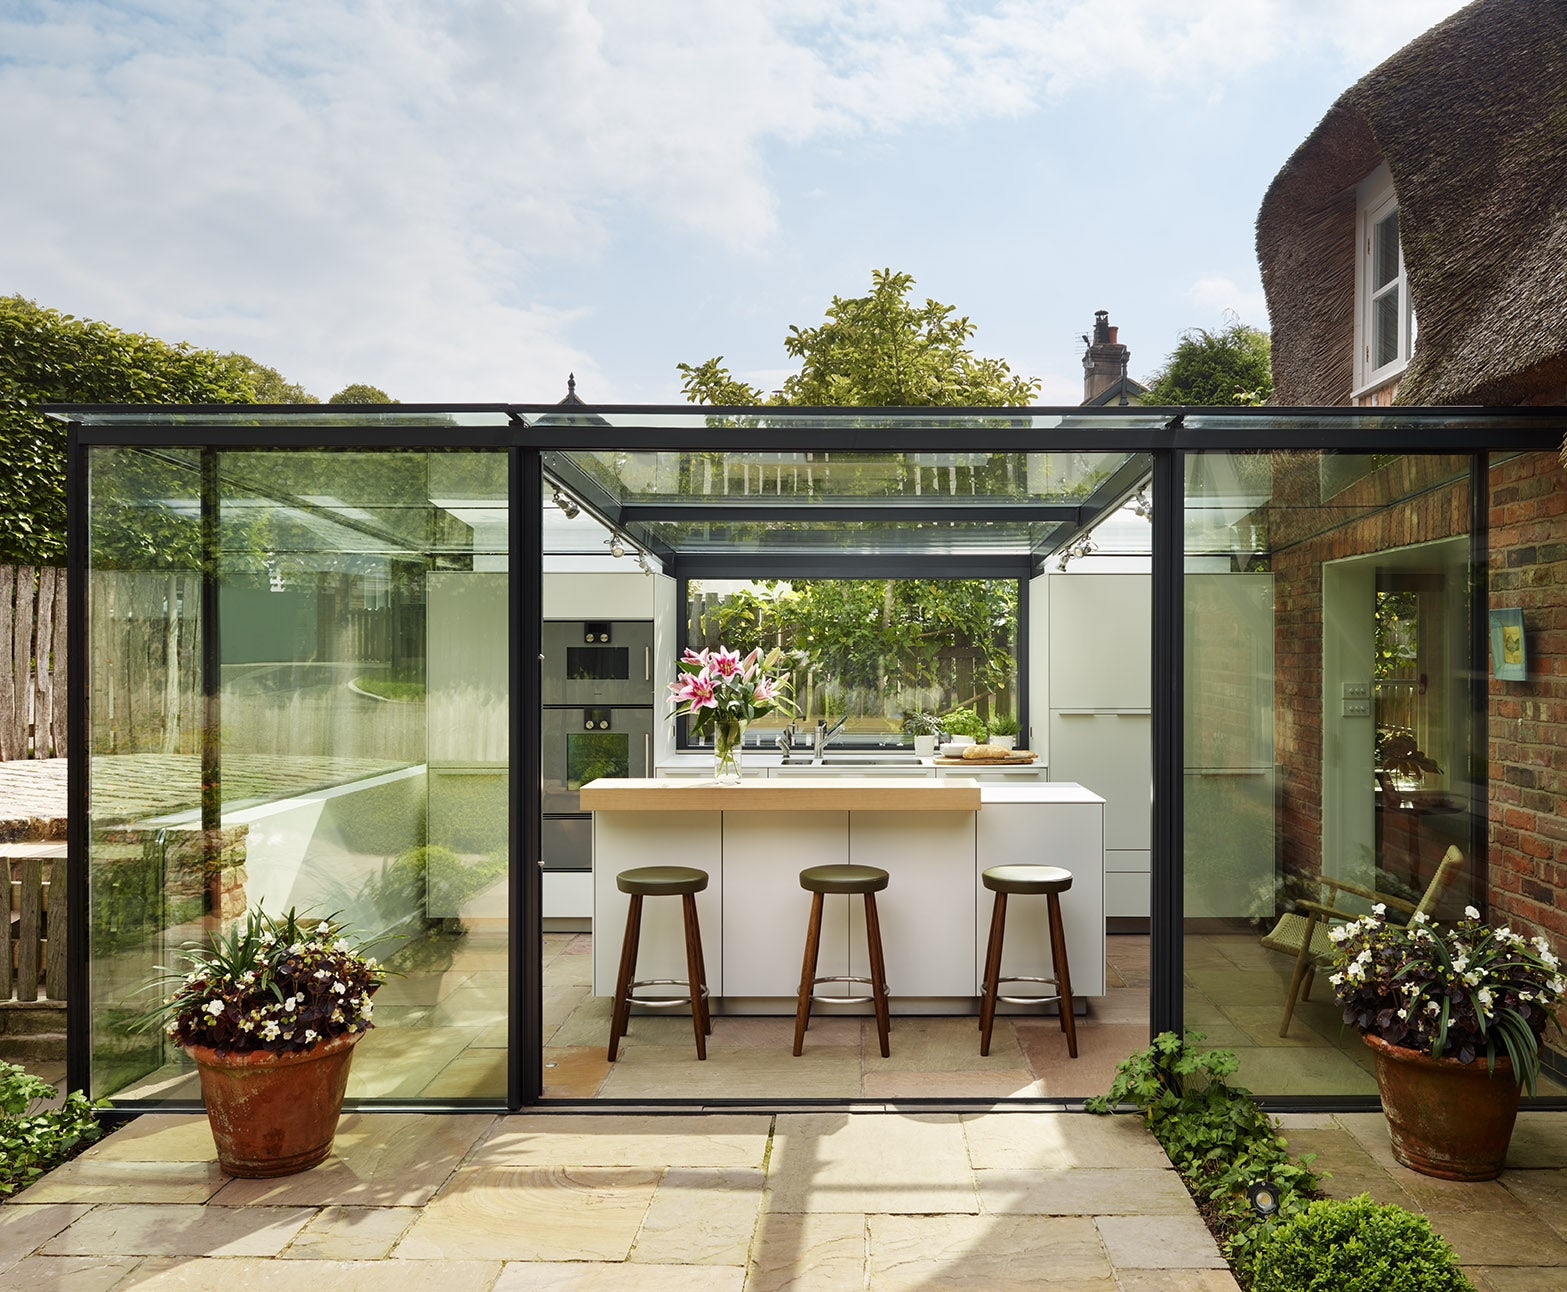 #664325 Glass Box Extension On Thatched Cottage: Kitchen Architecture's  Kitchen Glass Window Box 5041